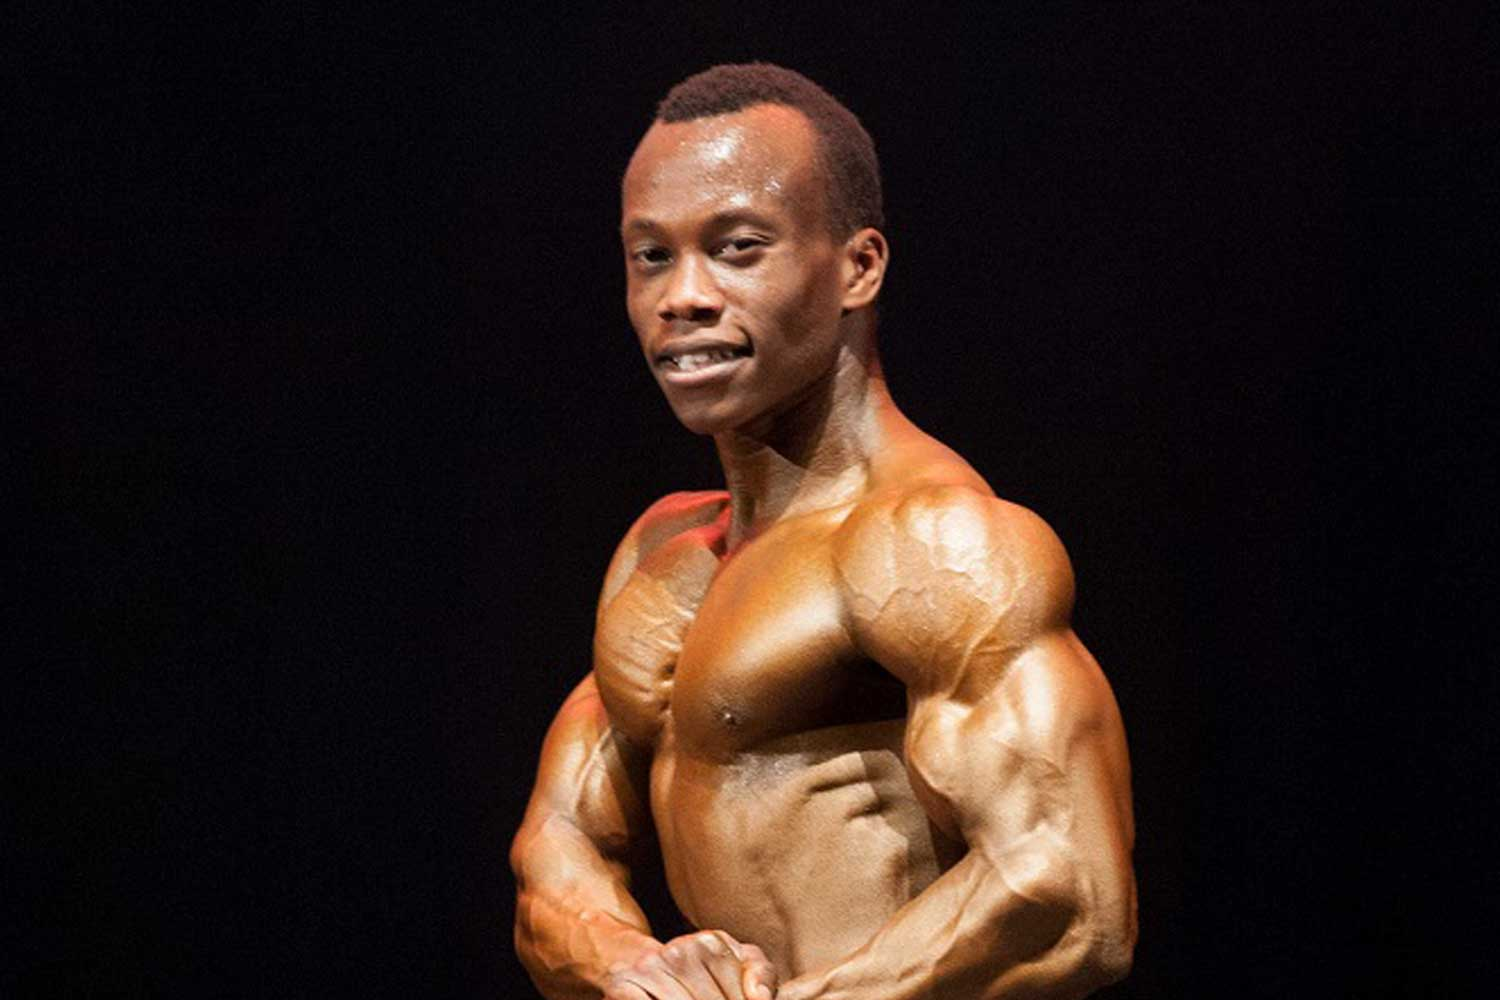 How Ffc Helped Me Win My First Bodybuilding Competition